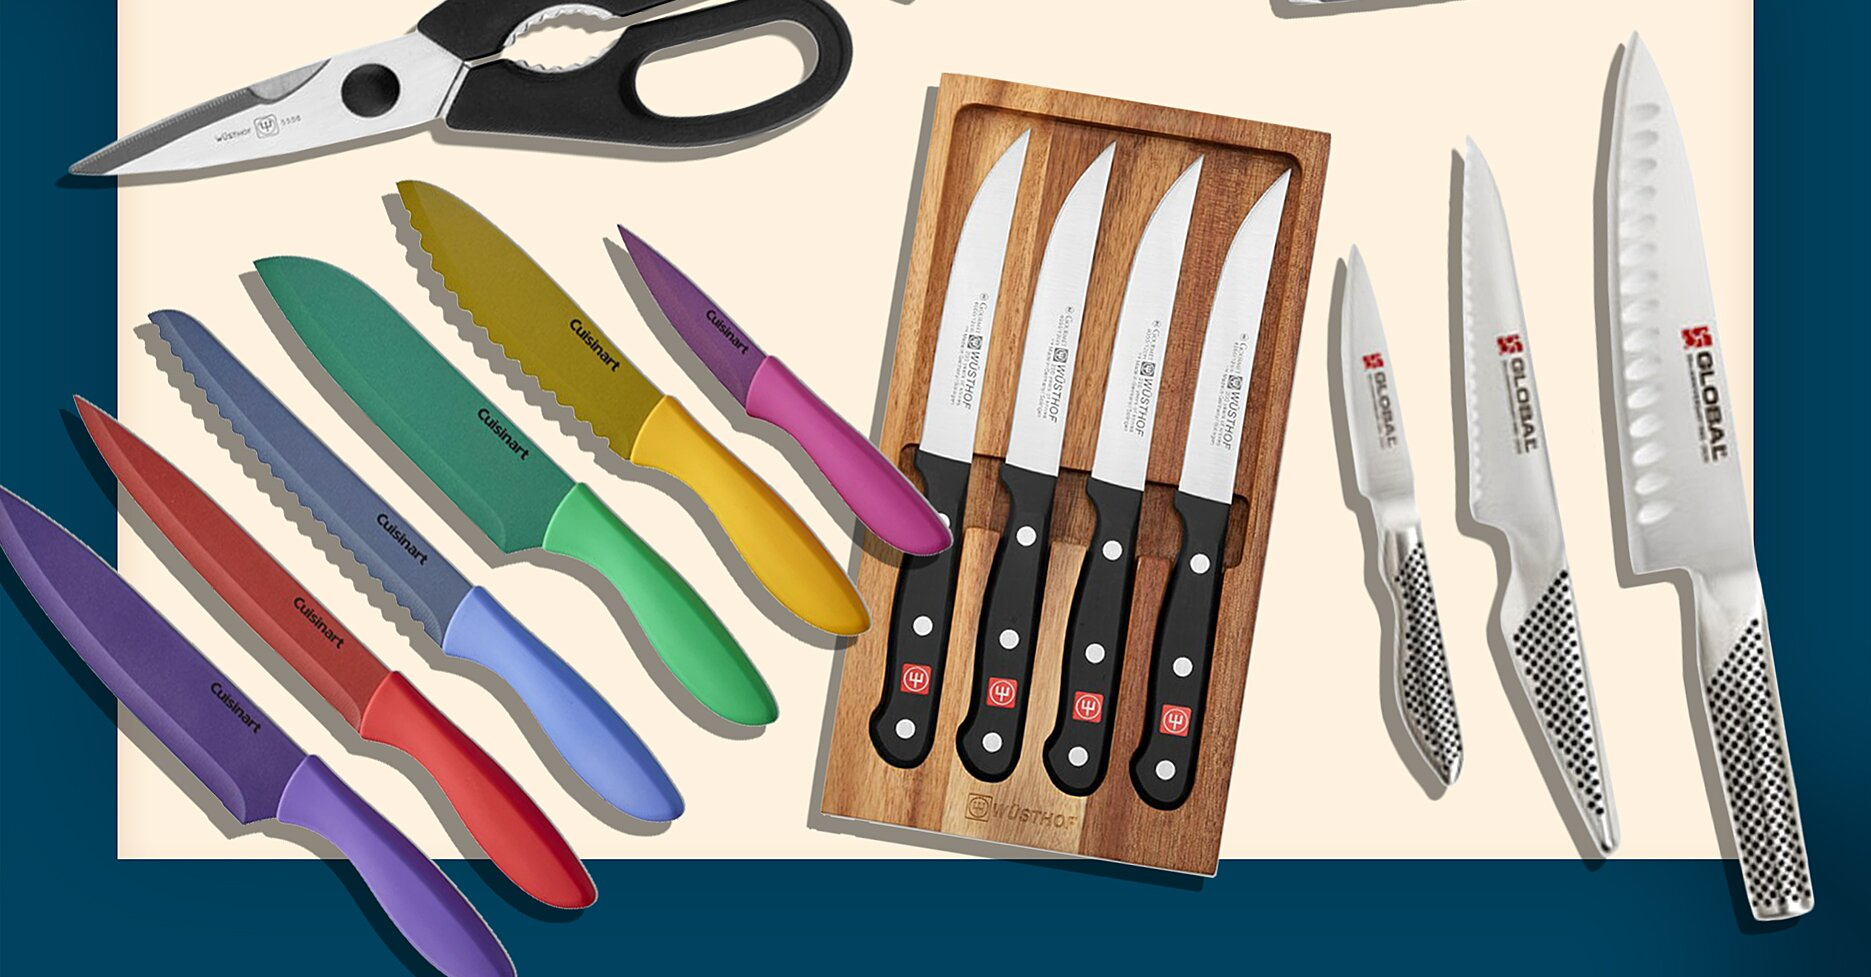 You Can Get 60% Off Some of Our Favorite Knife Brands at Williams Sonoma Right Now